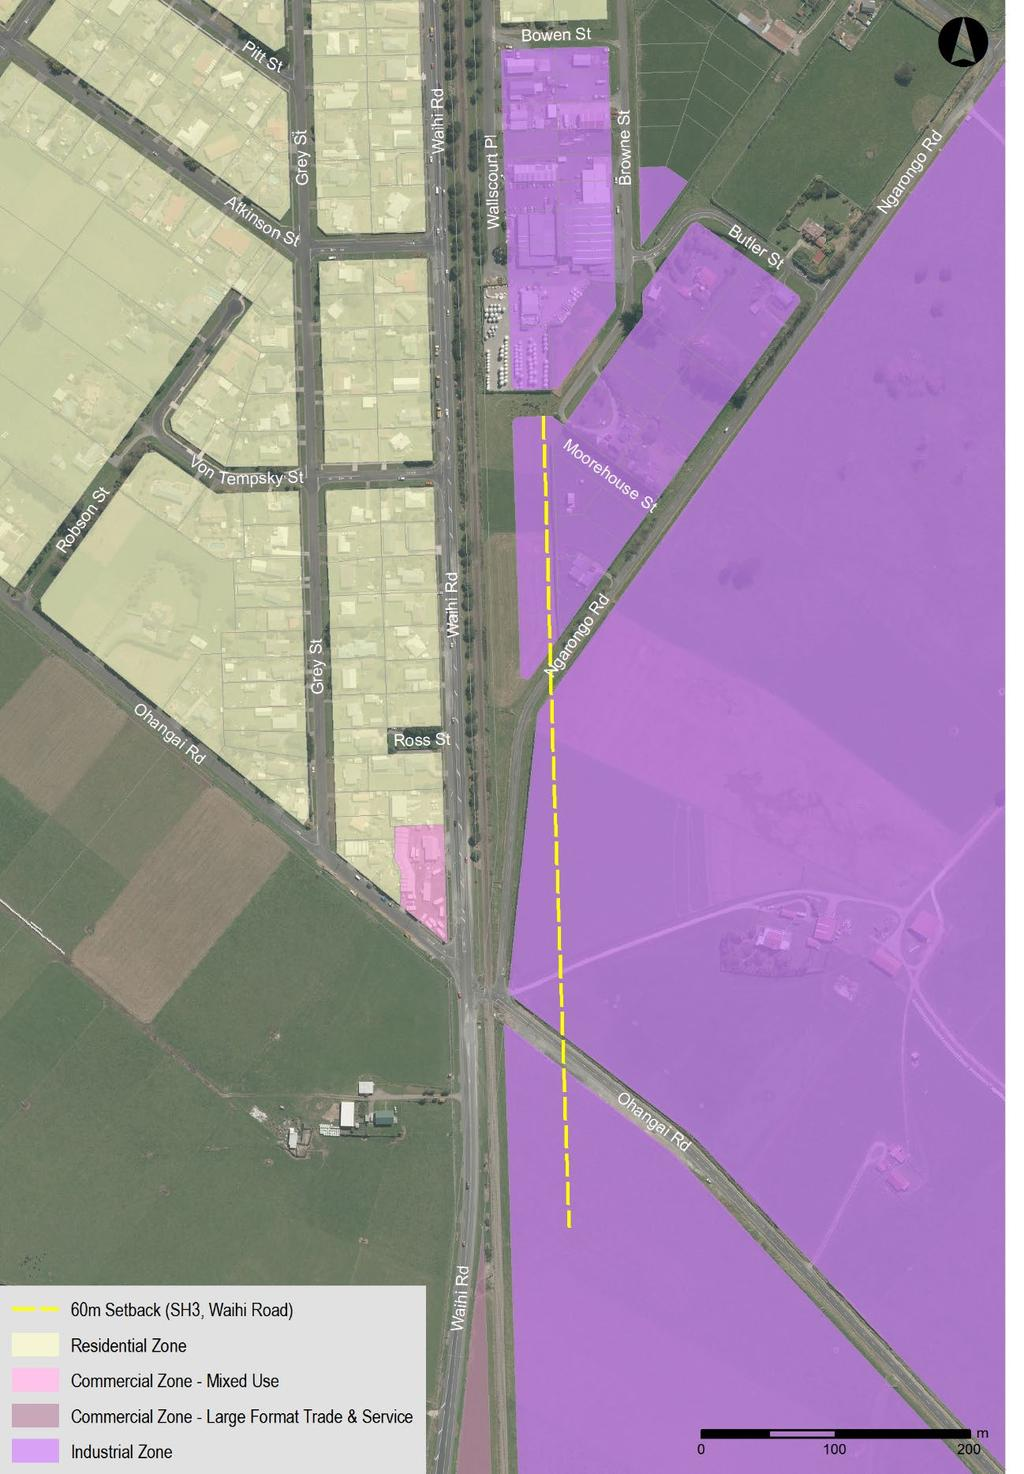 7.4 Industrial Zone Appendix 1: 60 metre building setback from State Highway